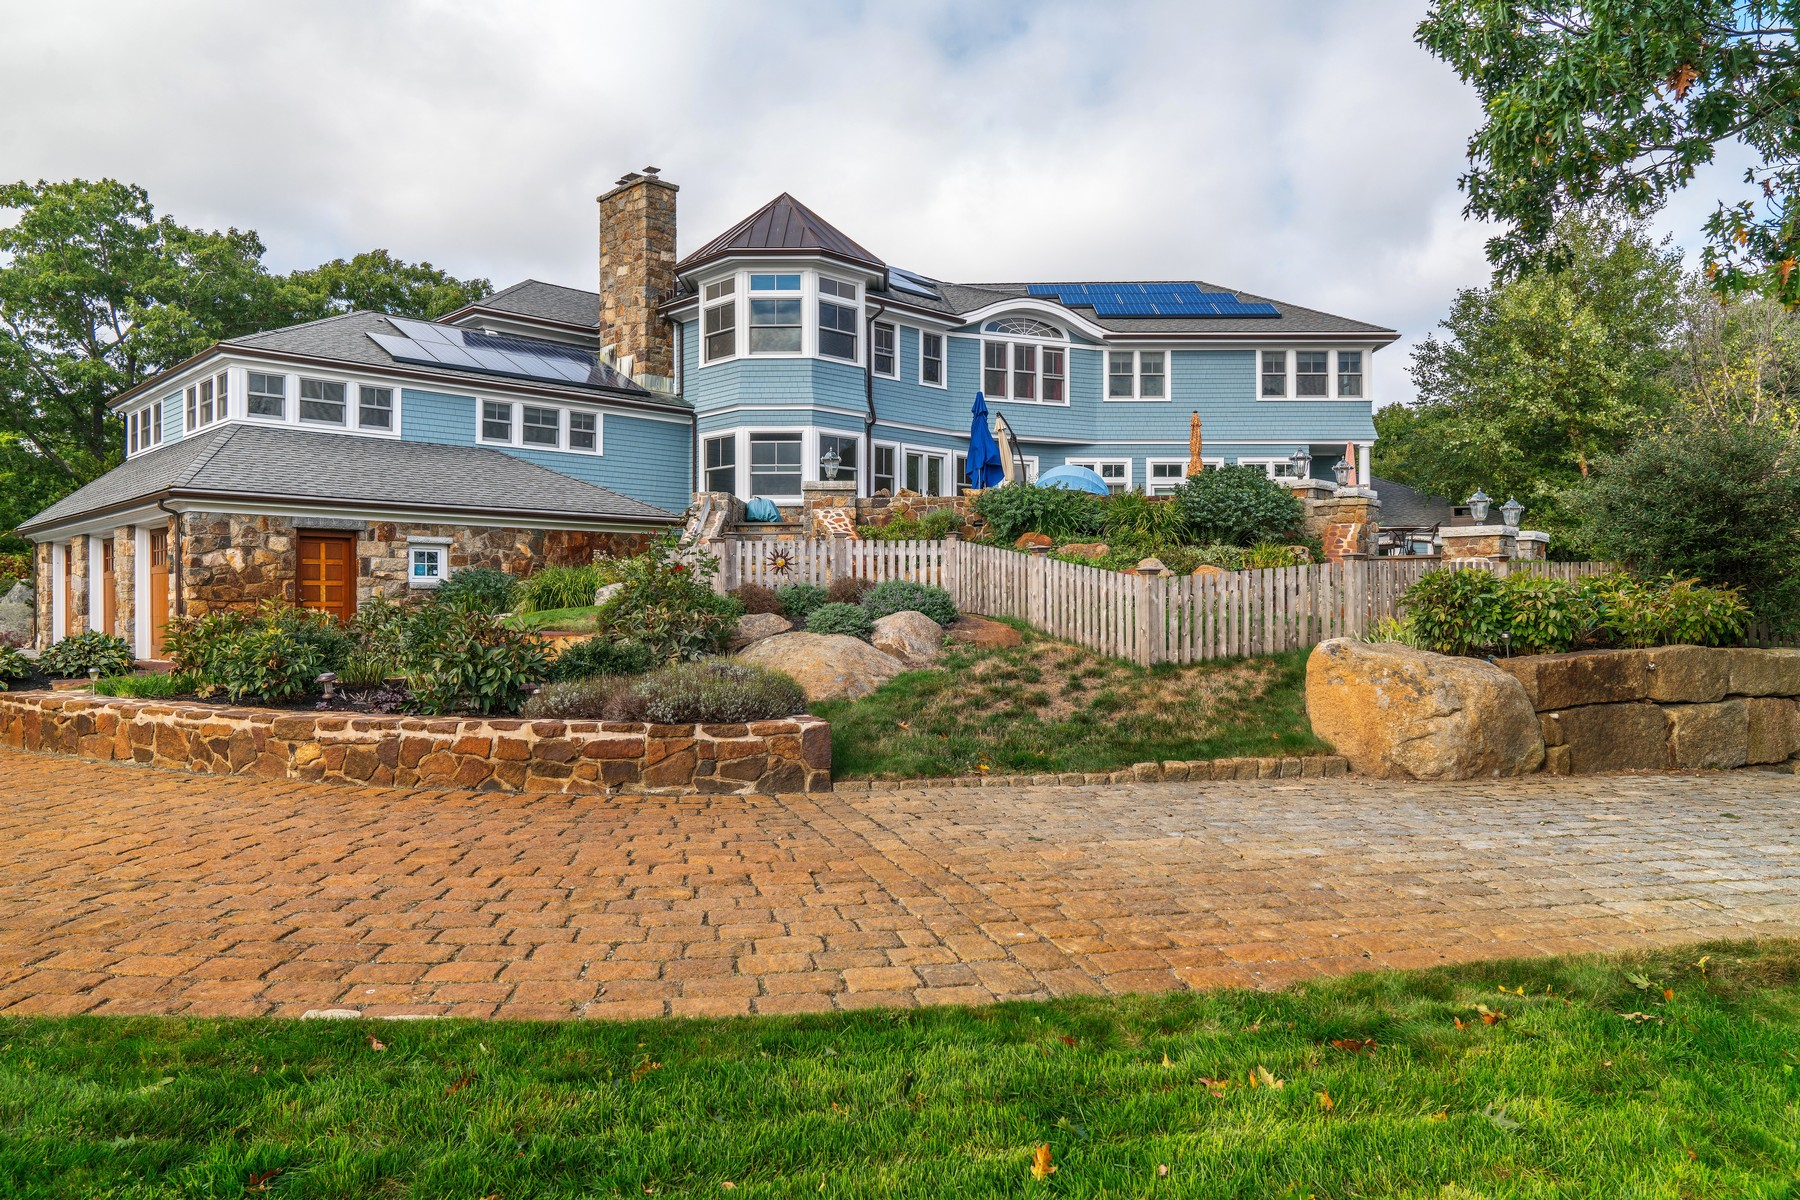 Single Family Home for Sale at Sweeping Ocean Views 25 Penryn Way Rockport, Massachusetts 01966 United States